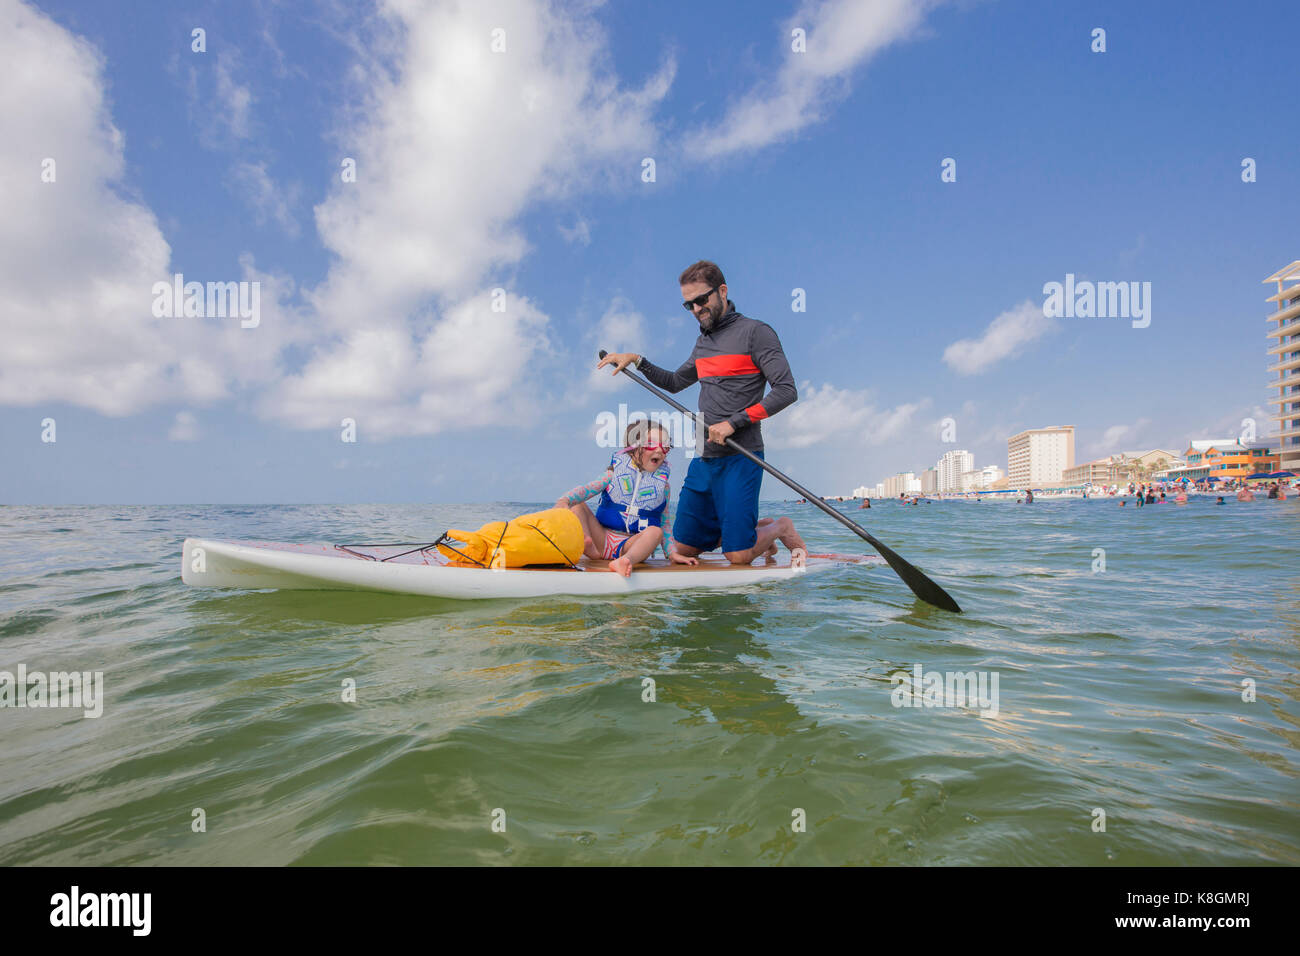 Father and daughter paddle boarding in the Gulf of Mexico, Florida, USA - Stock Image